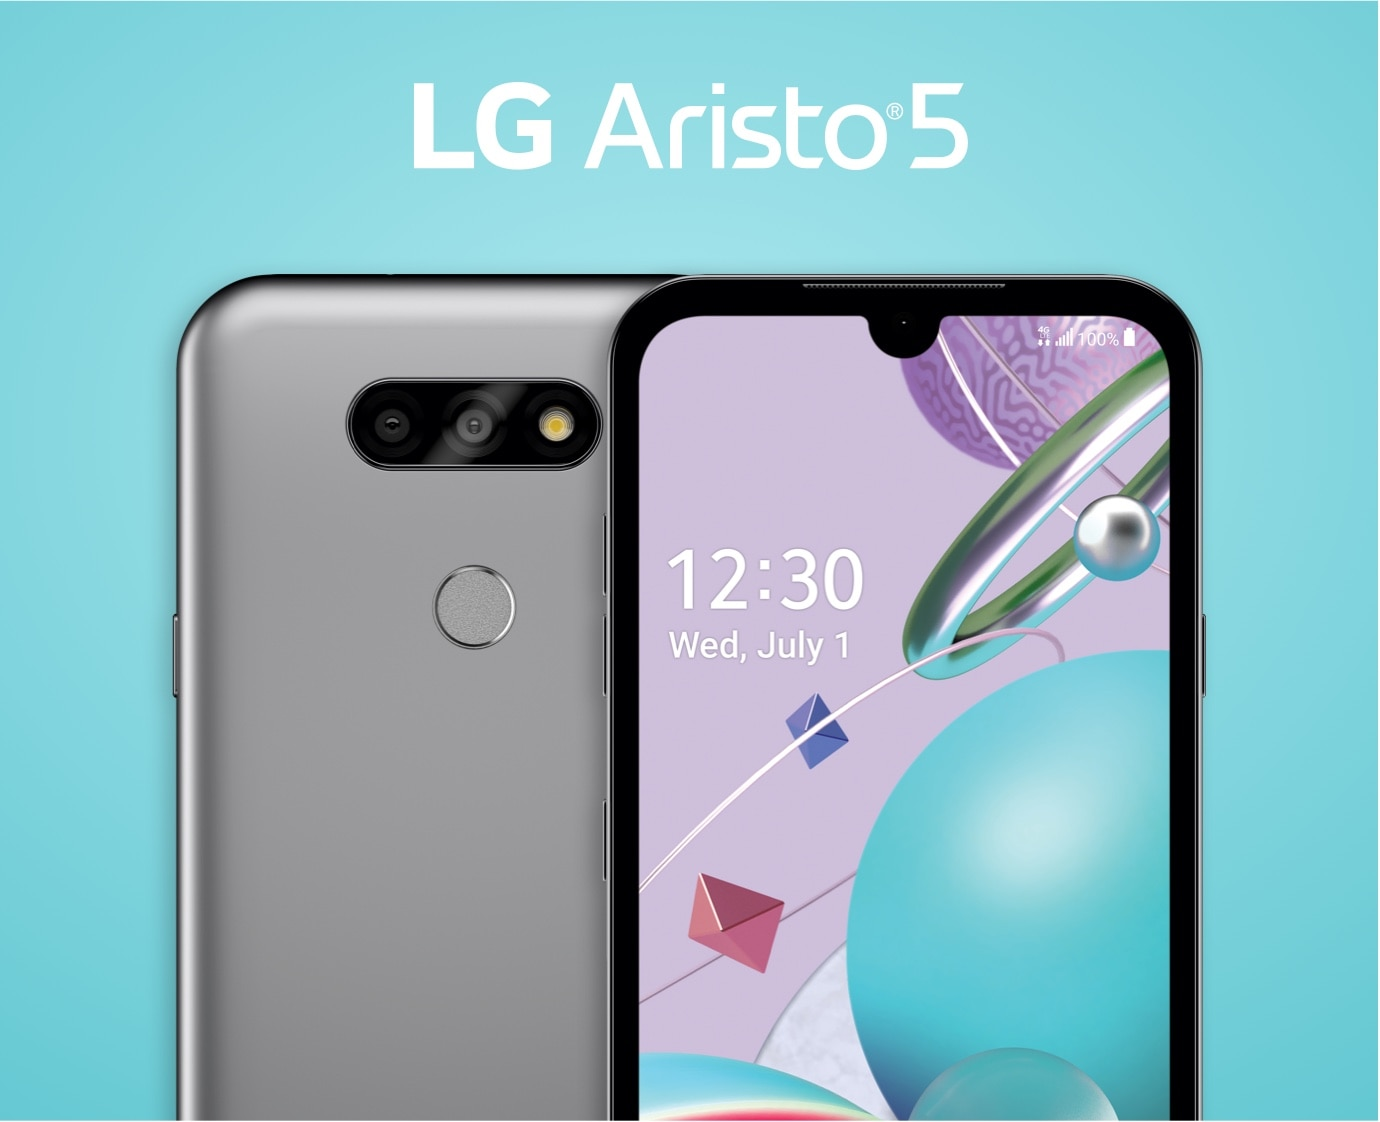 Learn about the LG Aristo 5